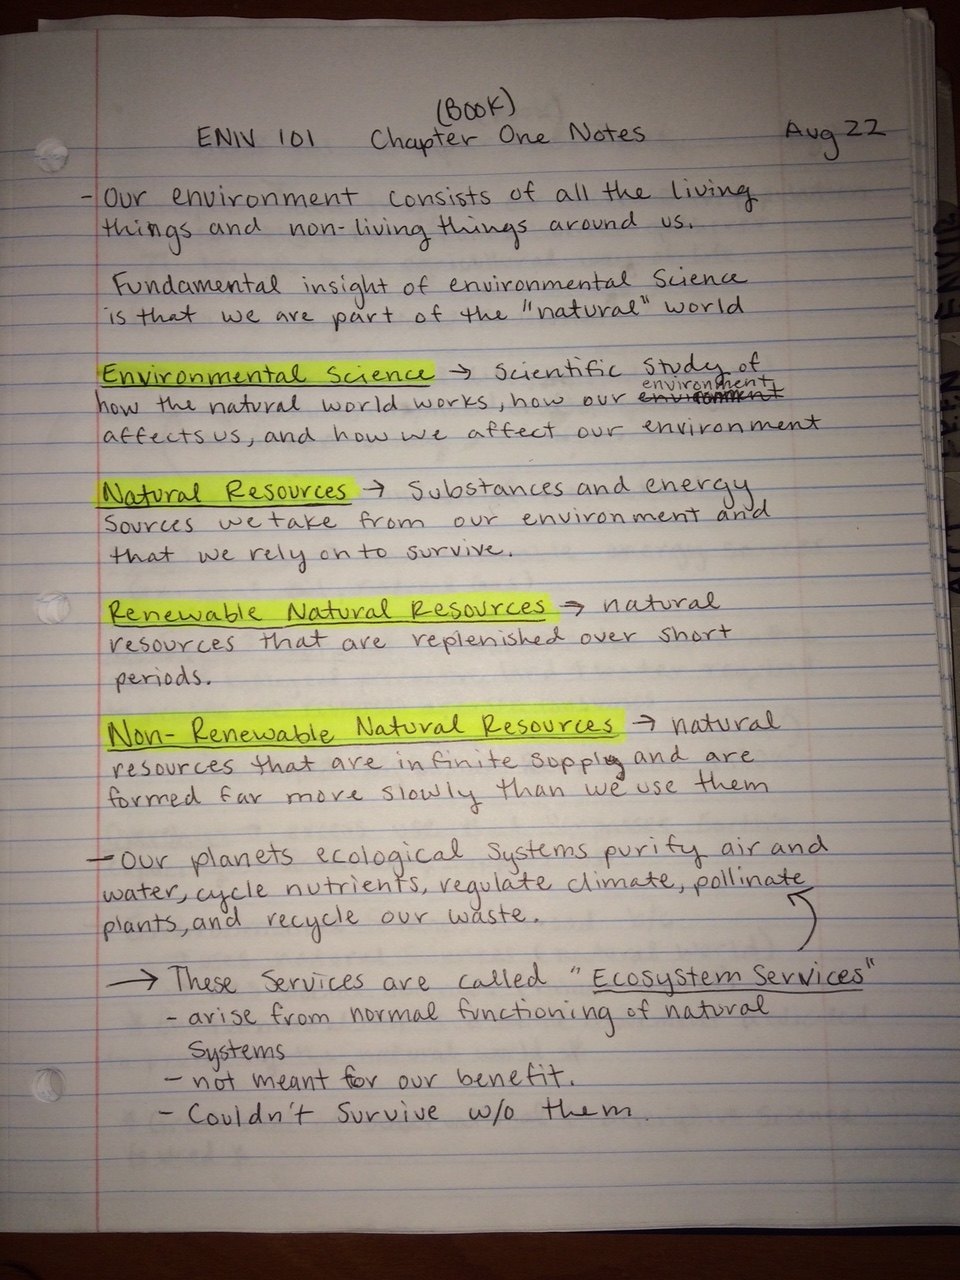 ECON 101 - Class Notes - Week 1